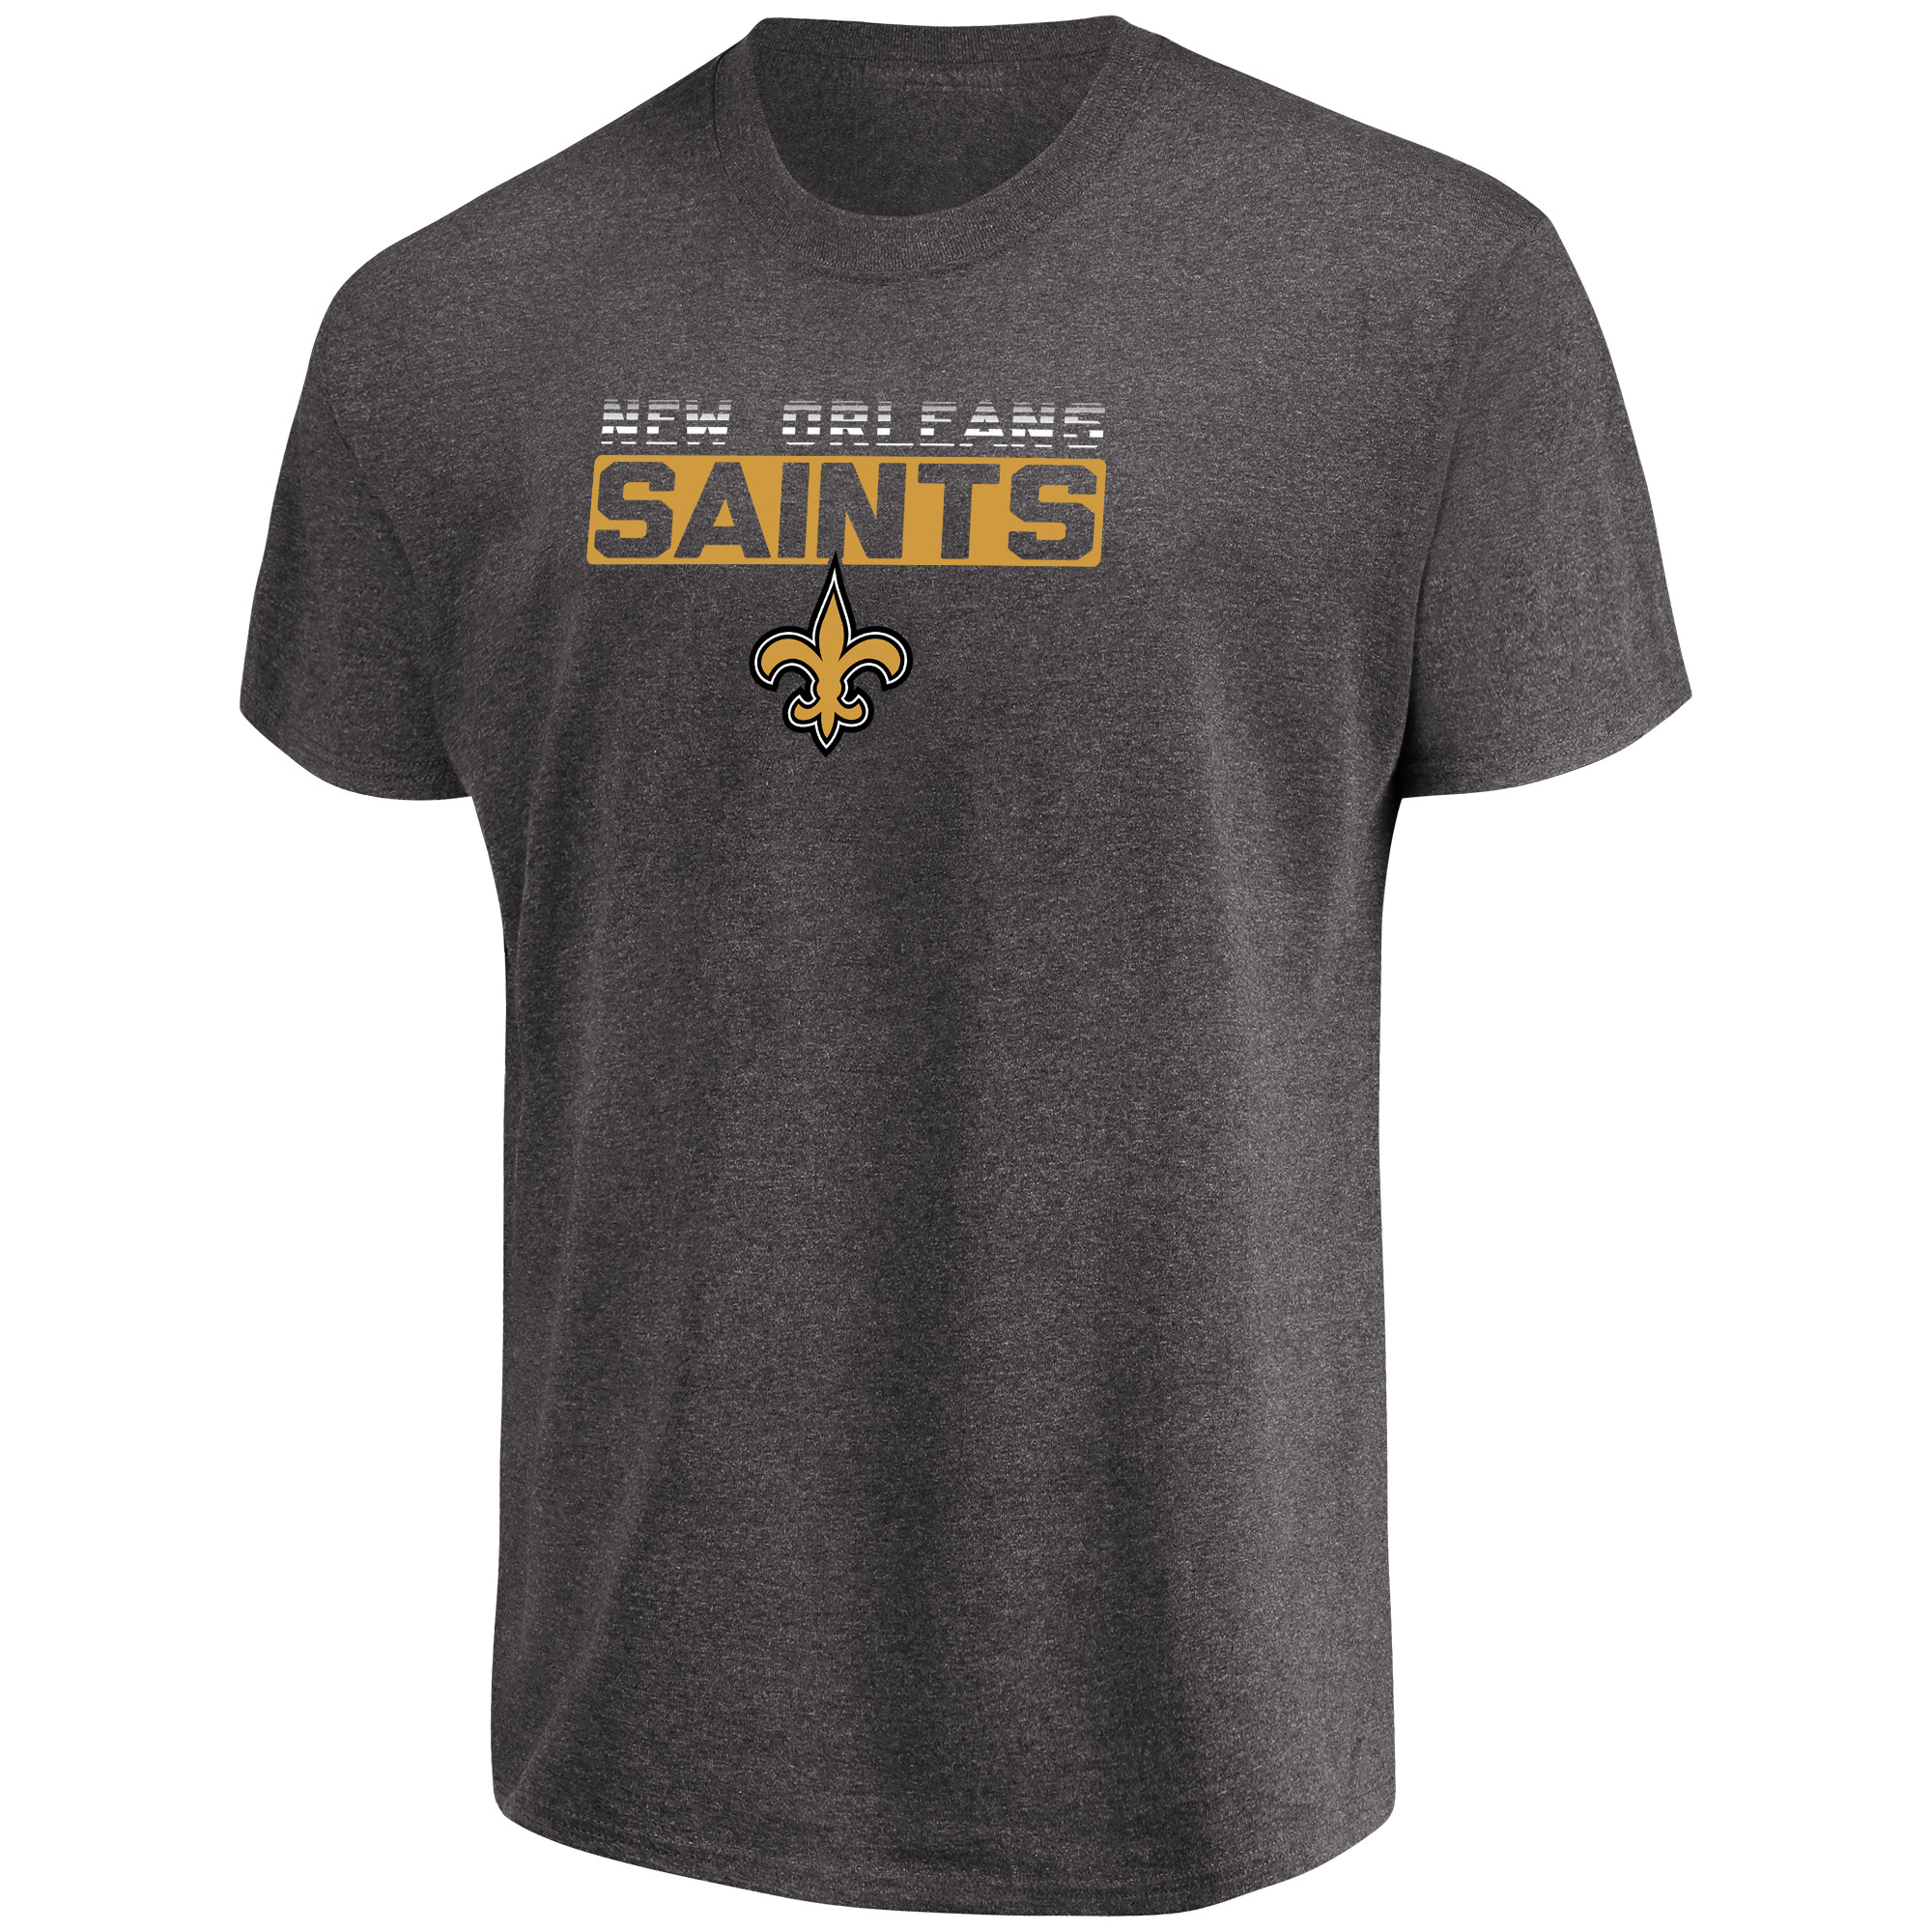 Men's Majestic Heathered Charcoal New Orleans Saints Come Into Play T-Shirt